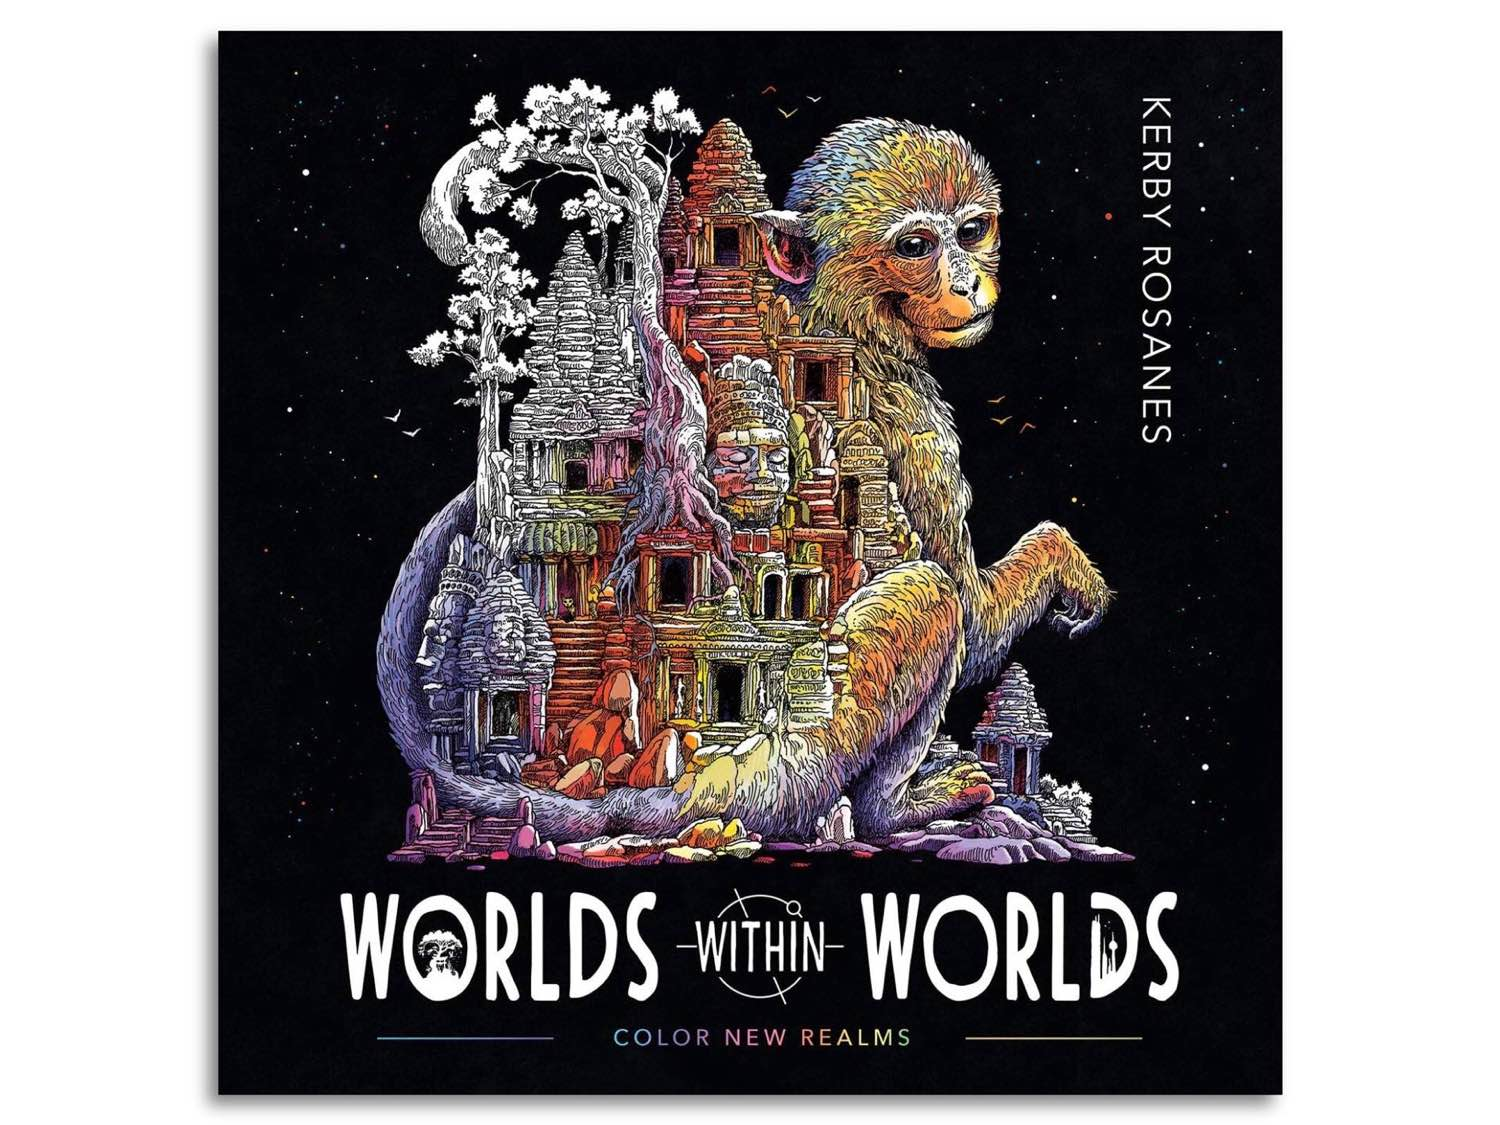 worlds-within-worlds-coloring-book-by-kerby-rosanes